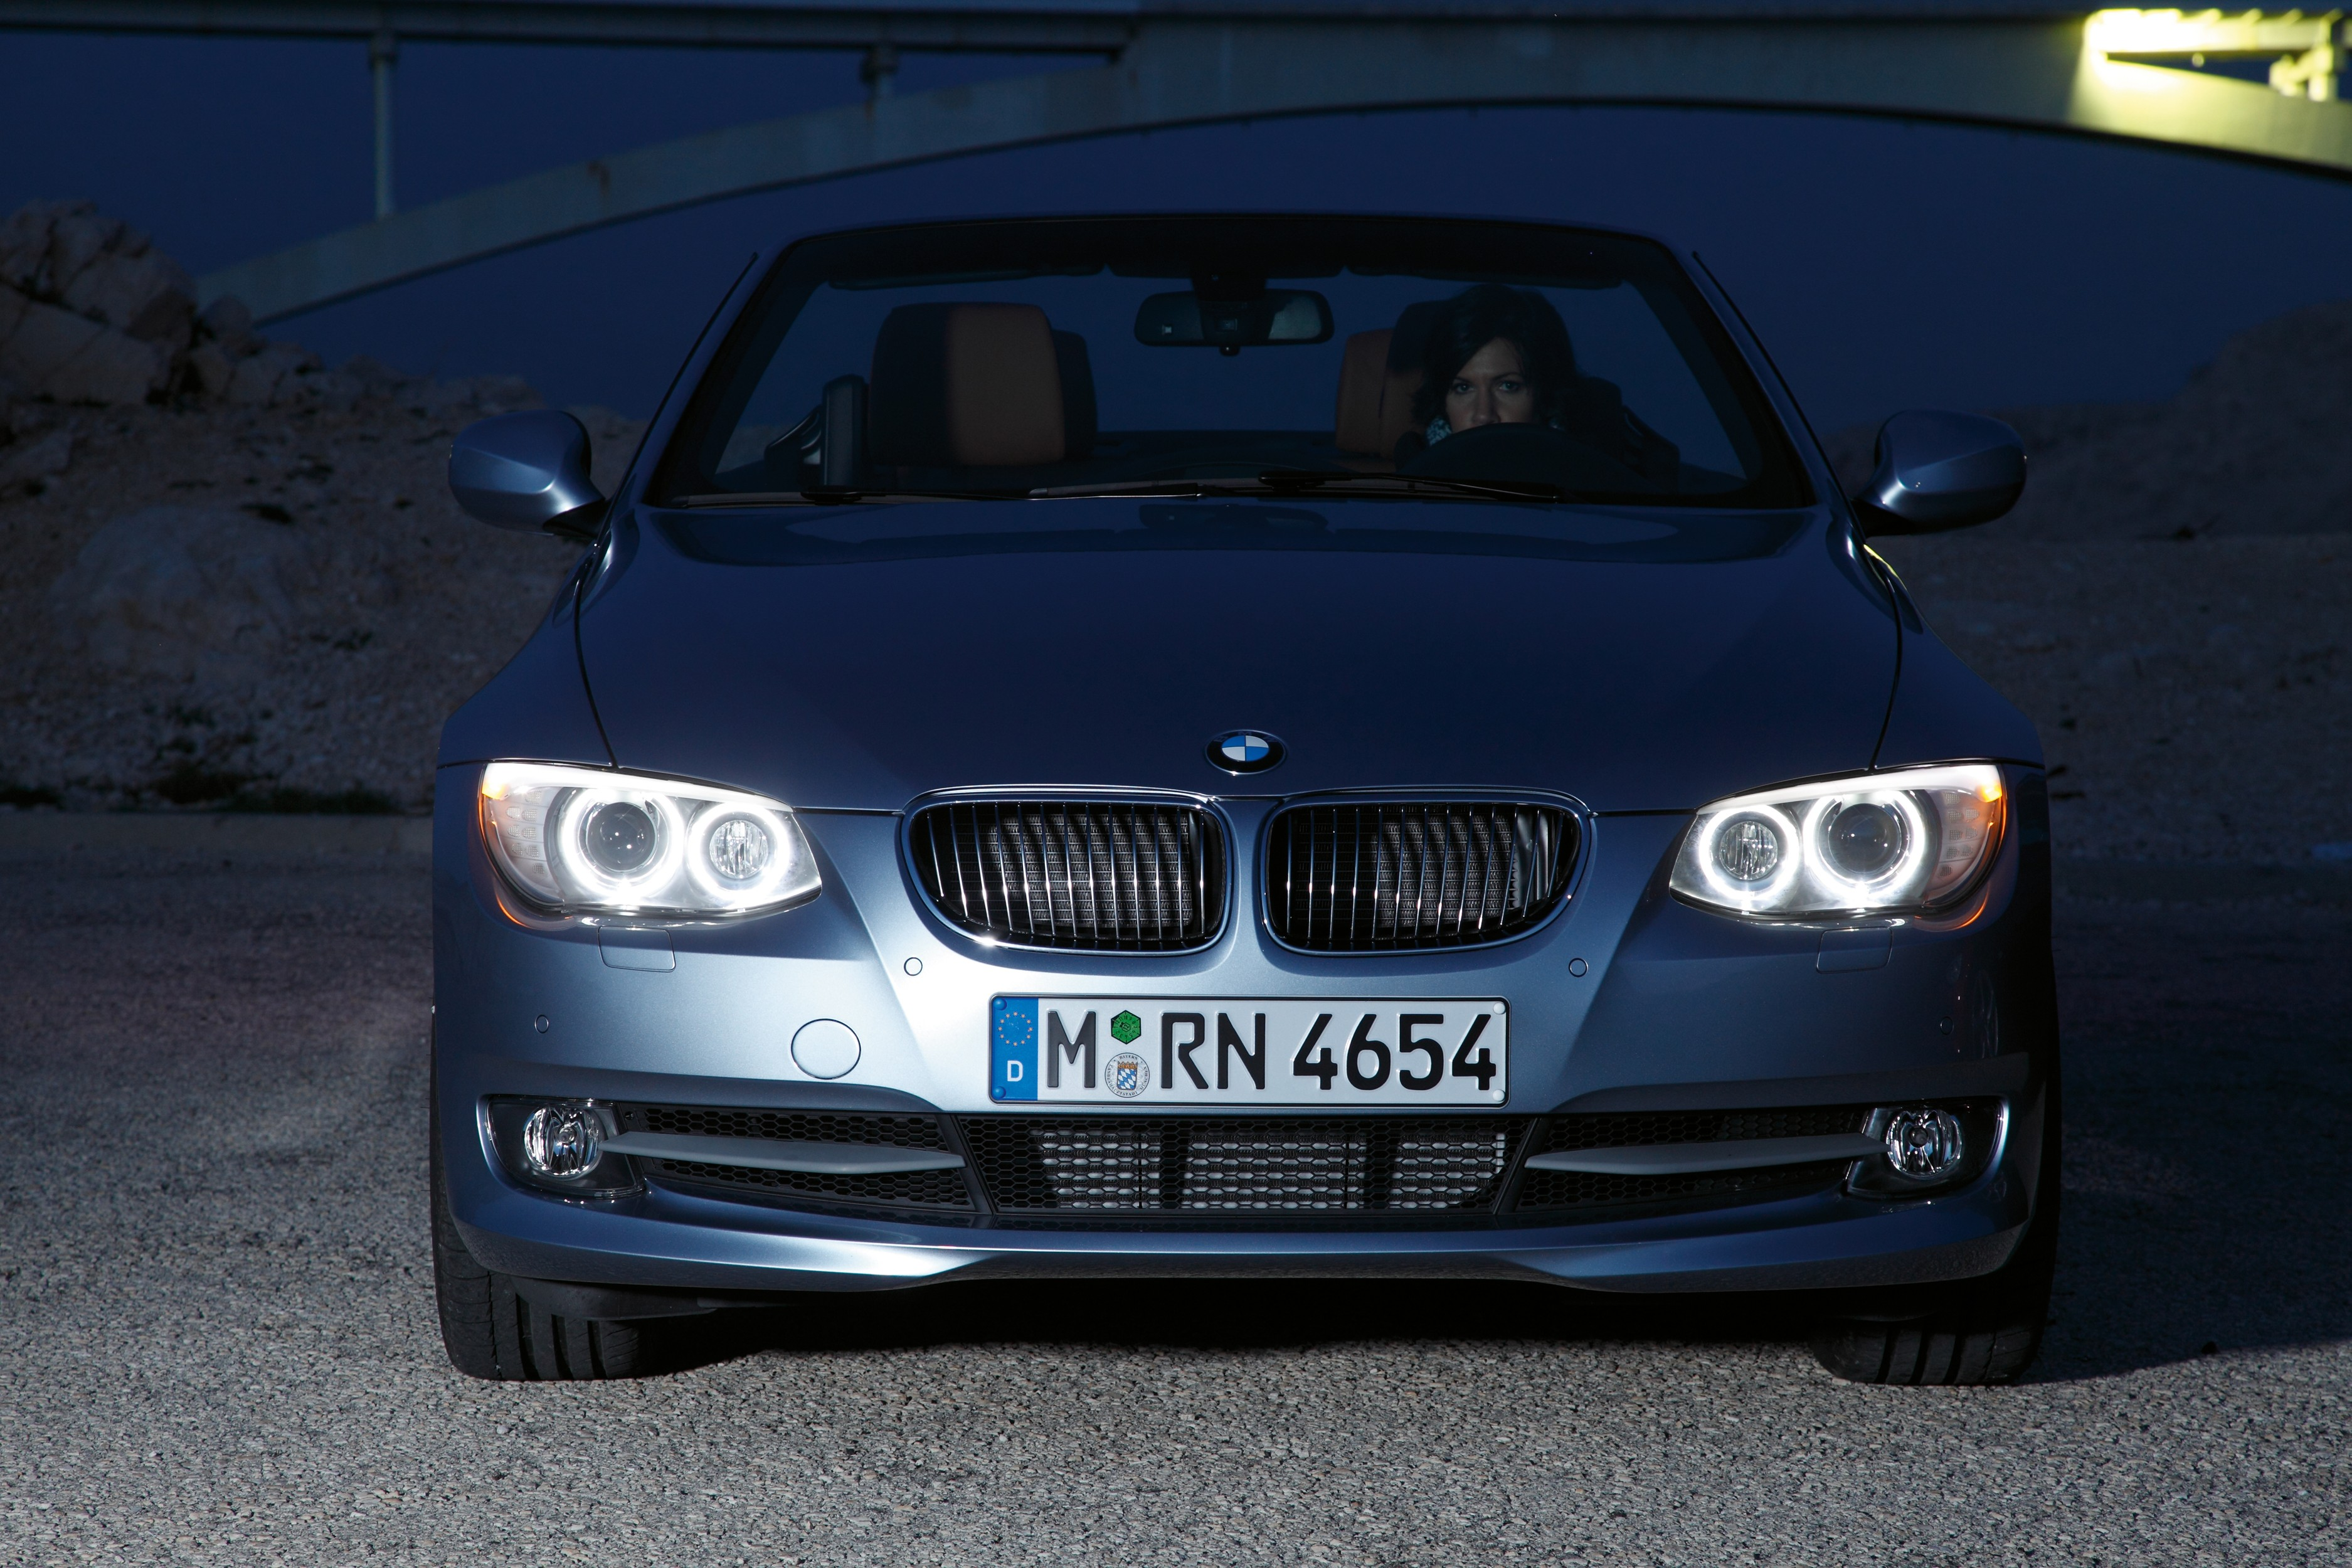 Convertible facelift - The